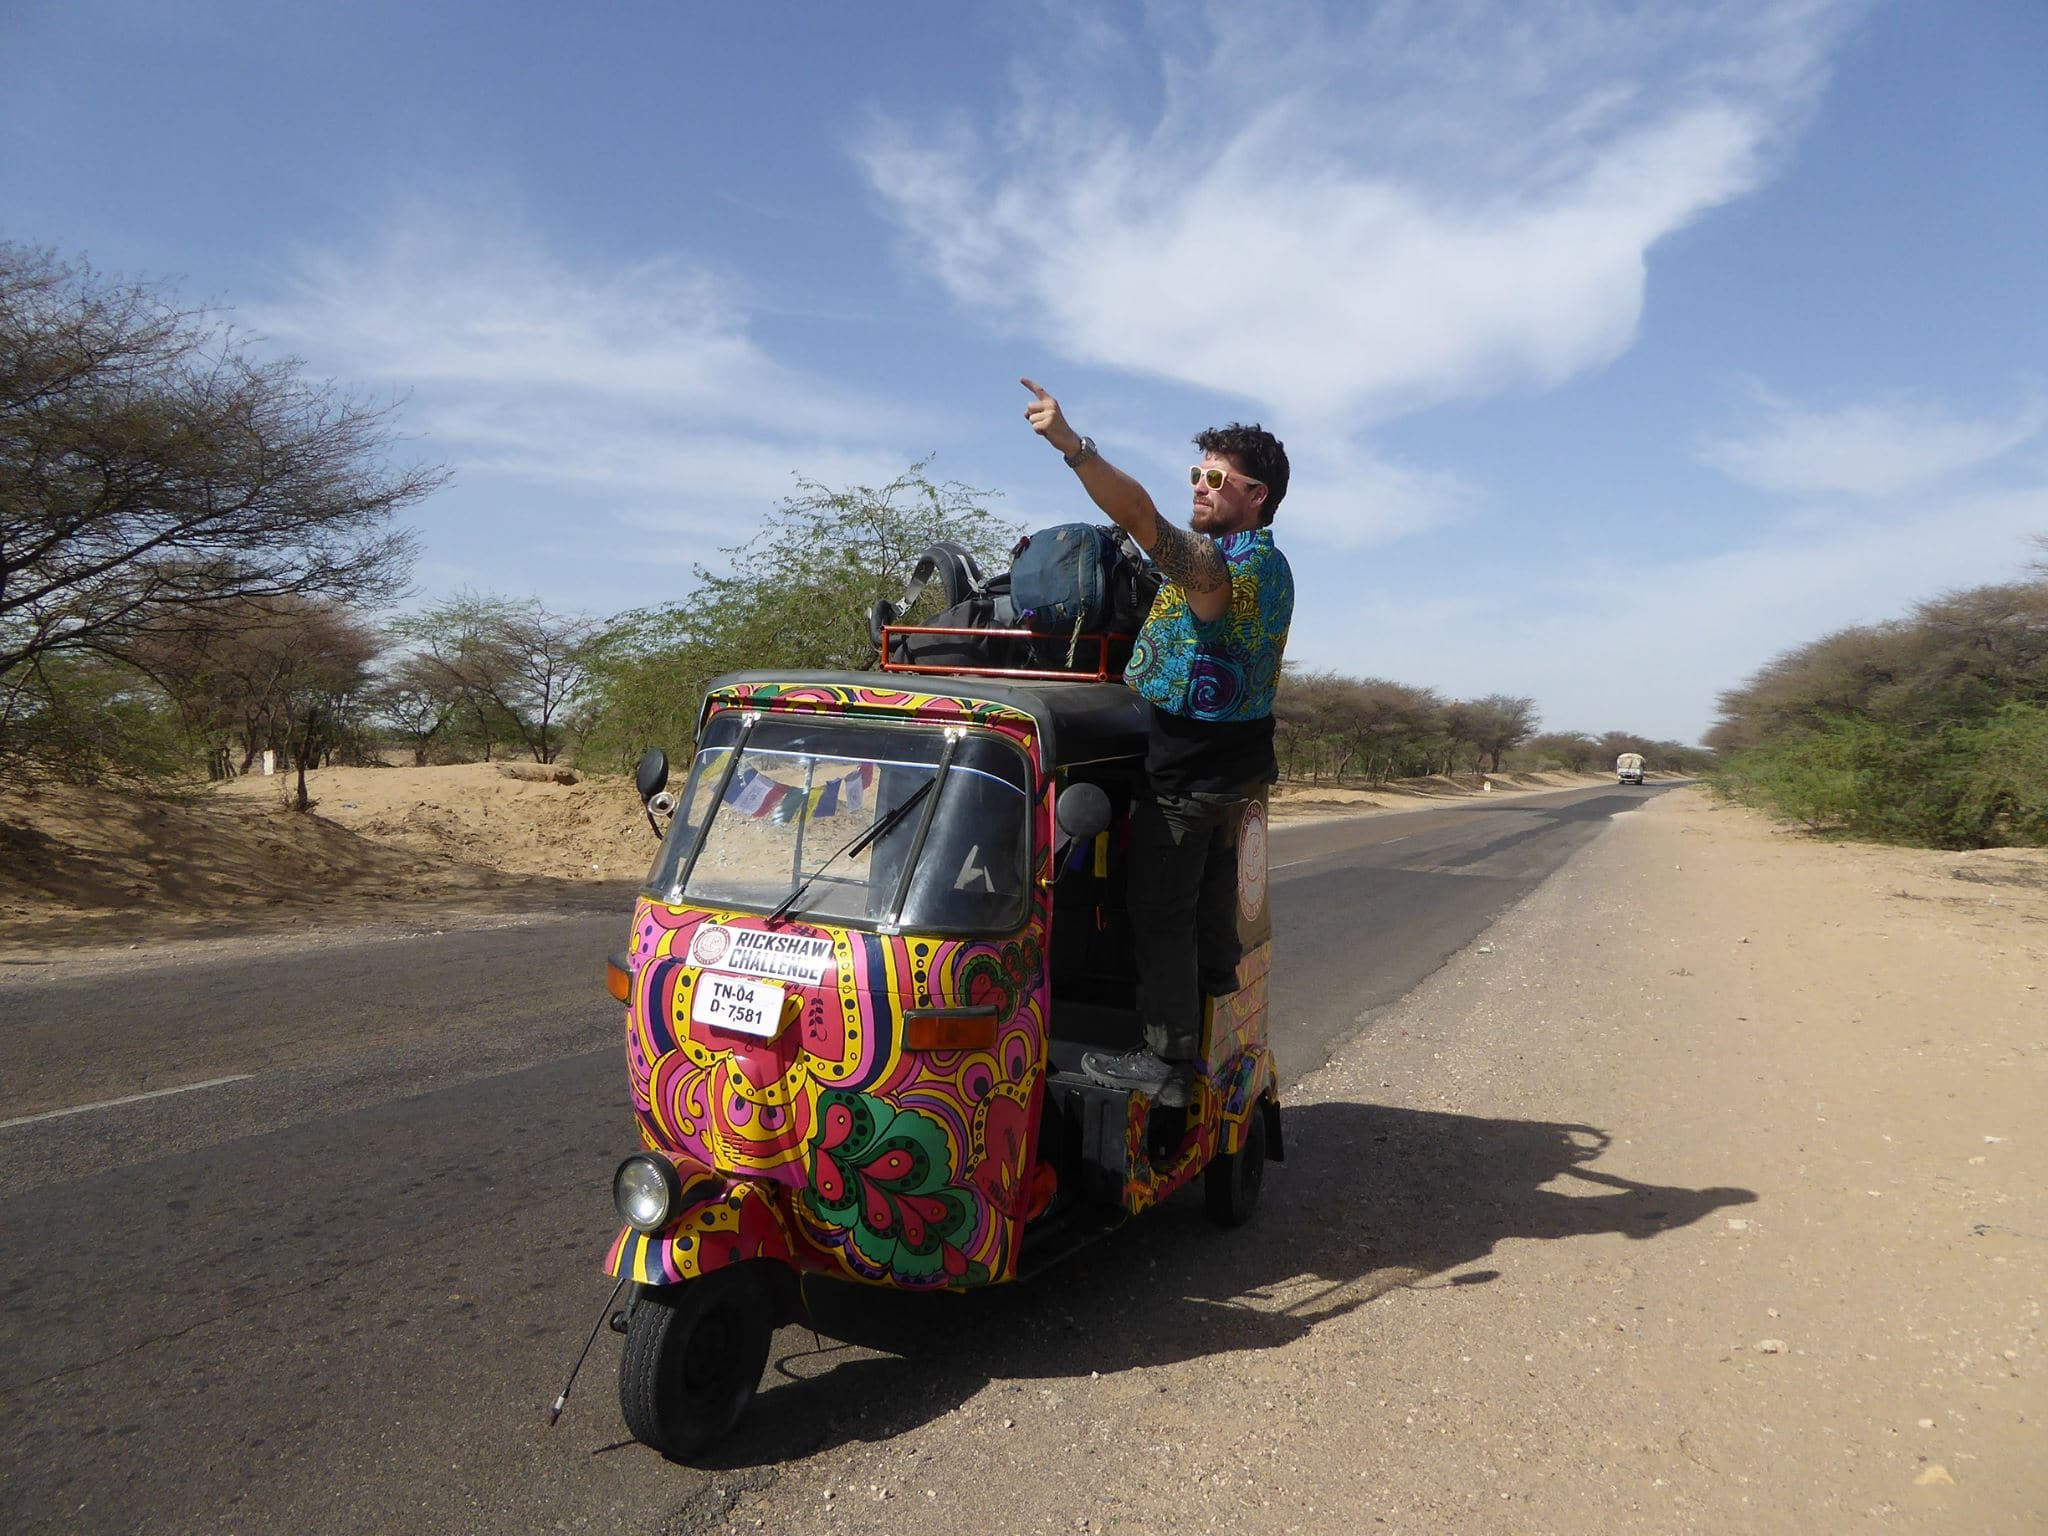 Tuk tuk around India by Will Hattton.